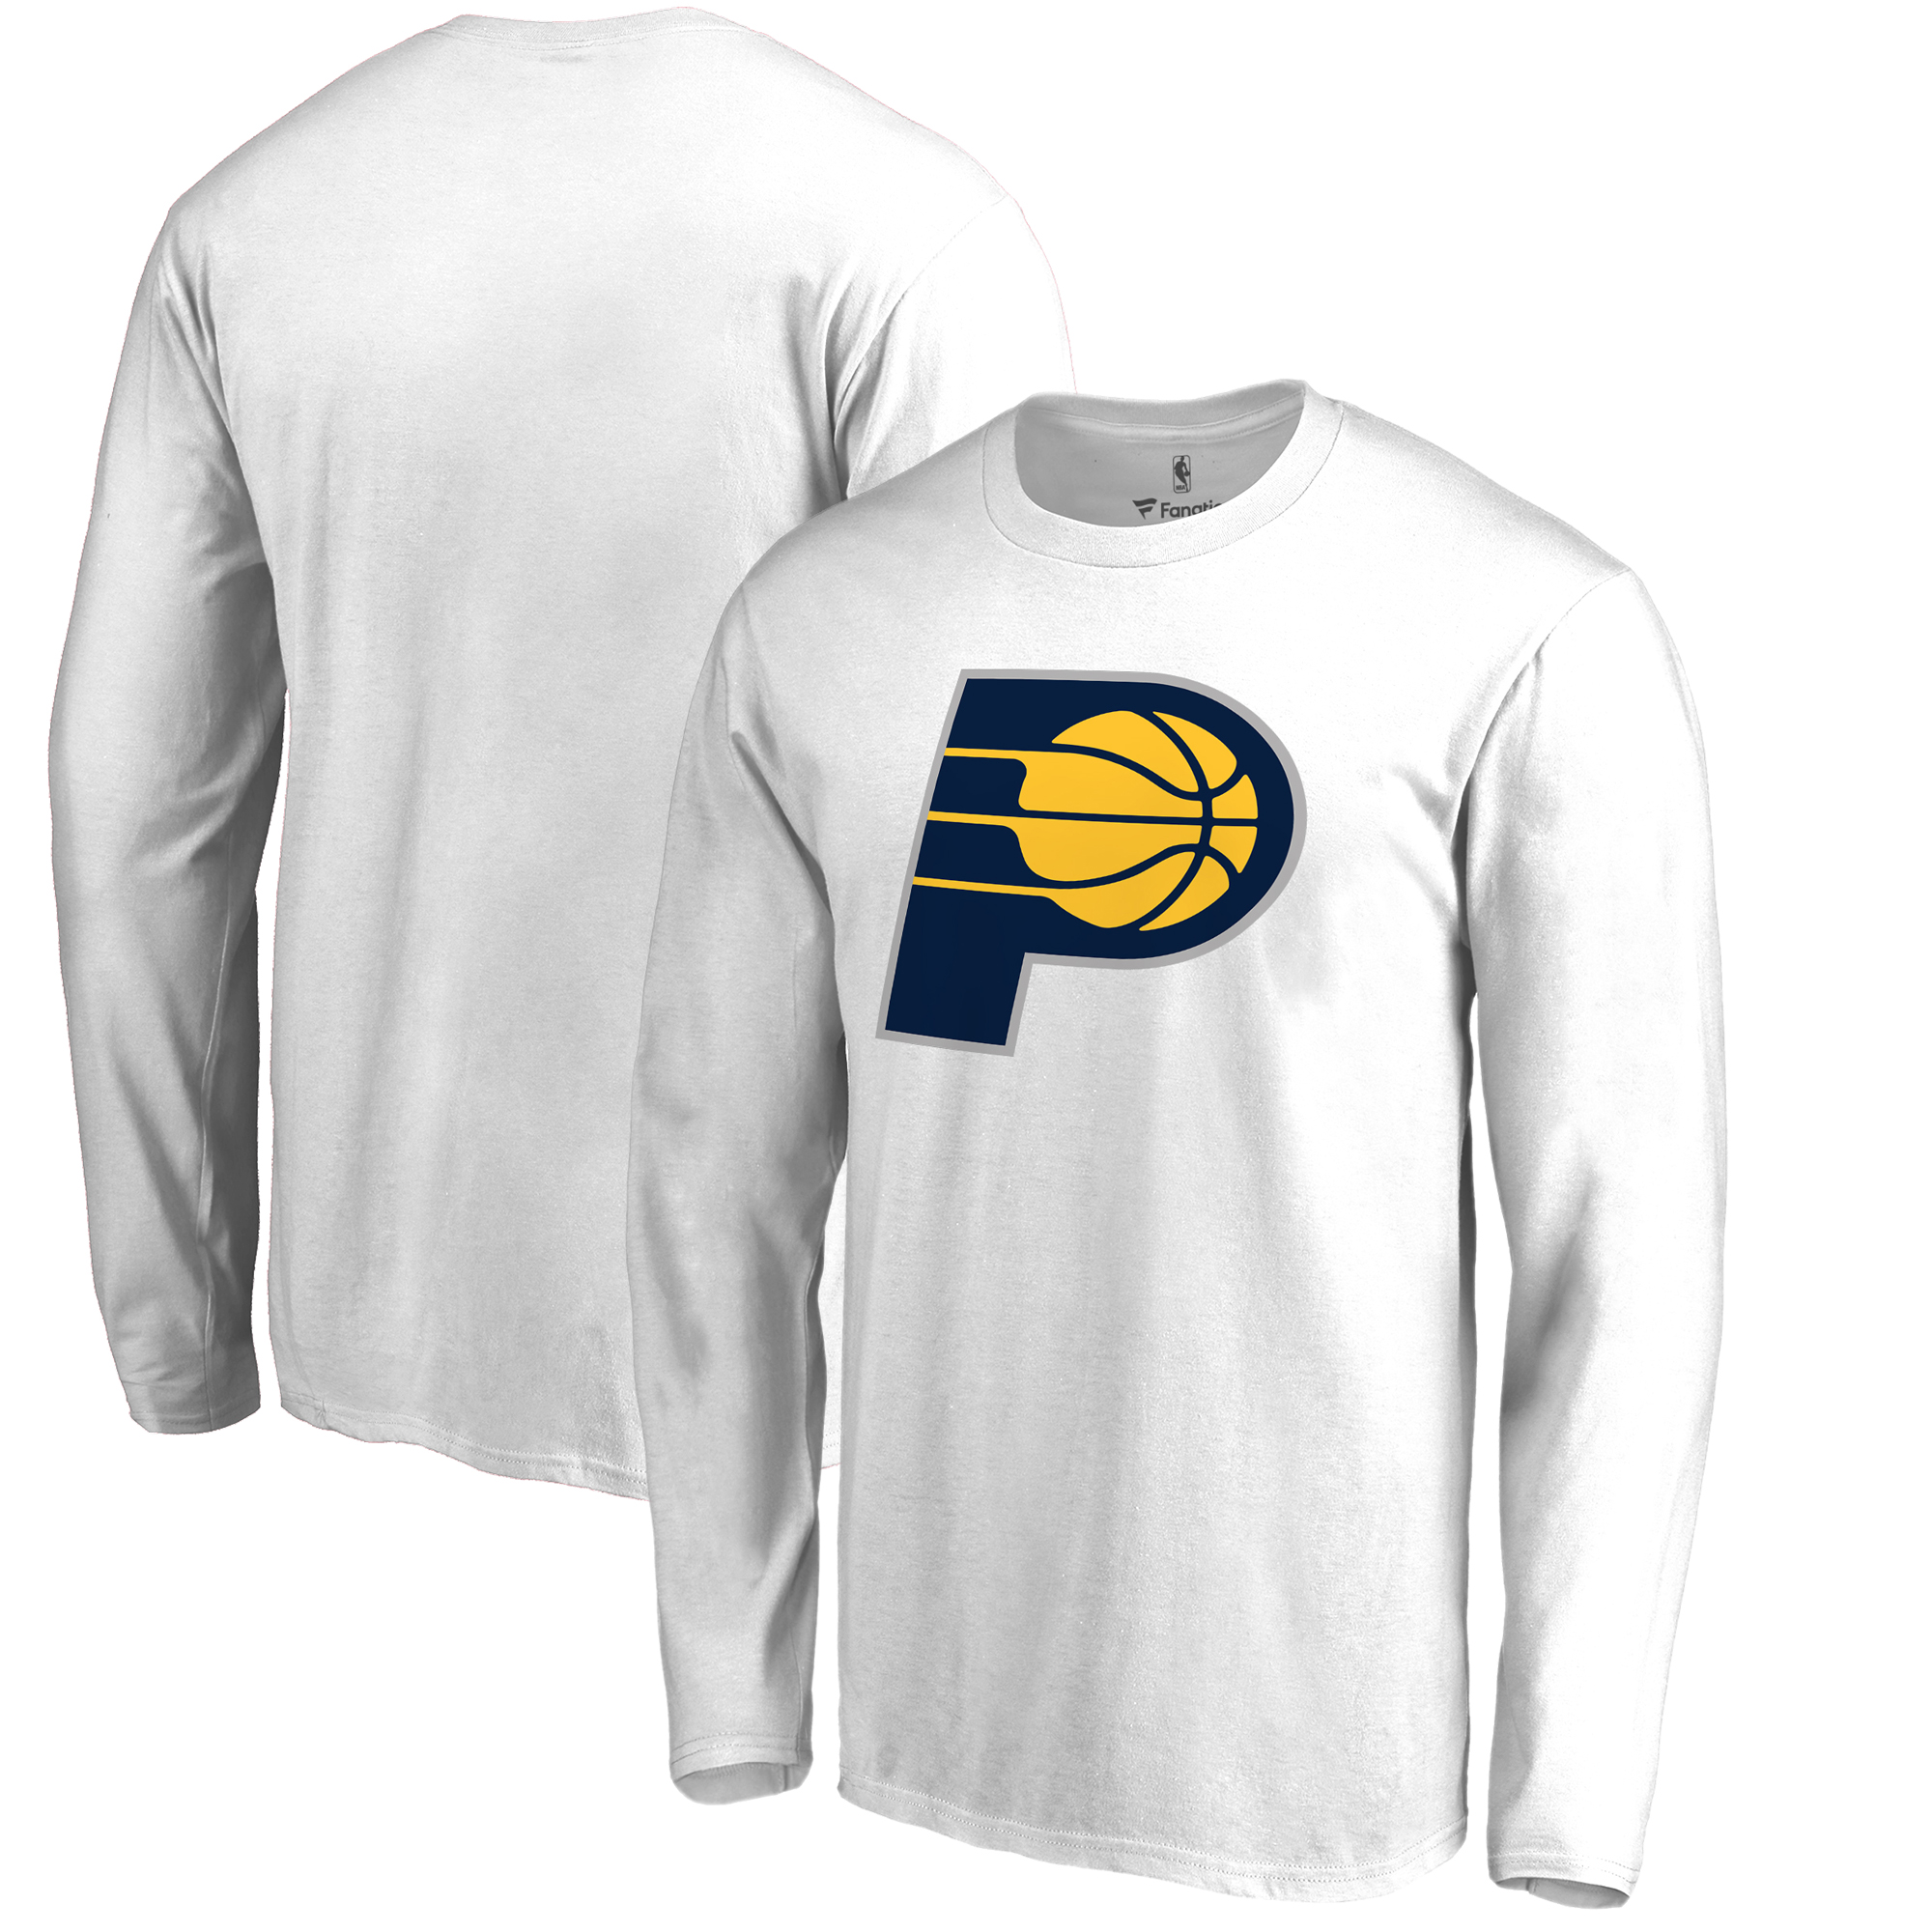 Indiana Pacers Fanatics Branded Primary Logo Long Sleeve T-Shirt - White